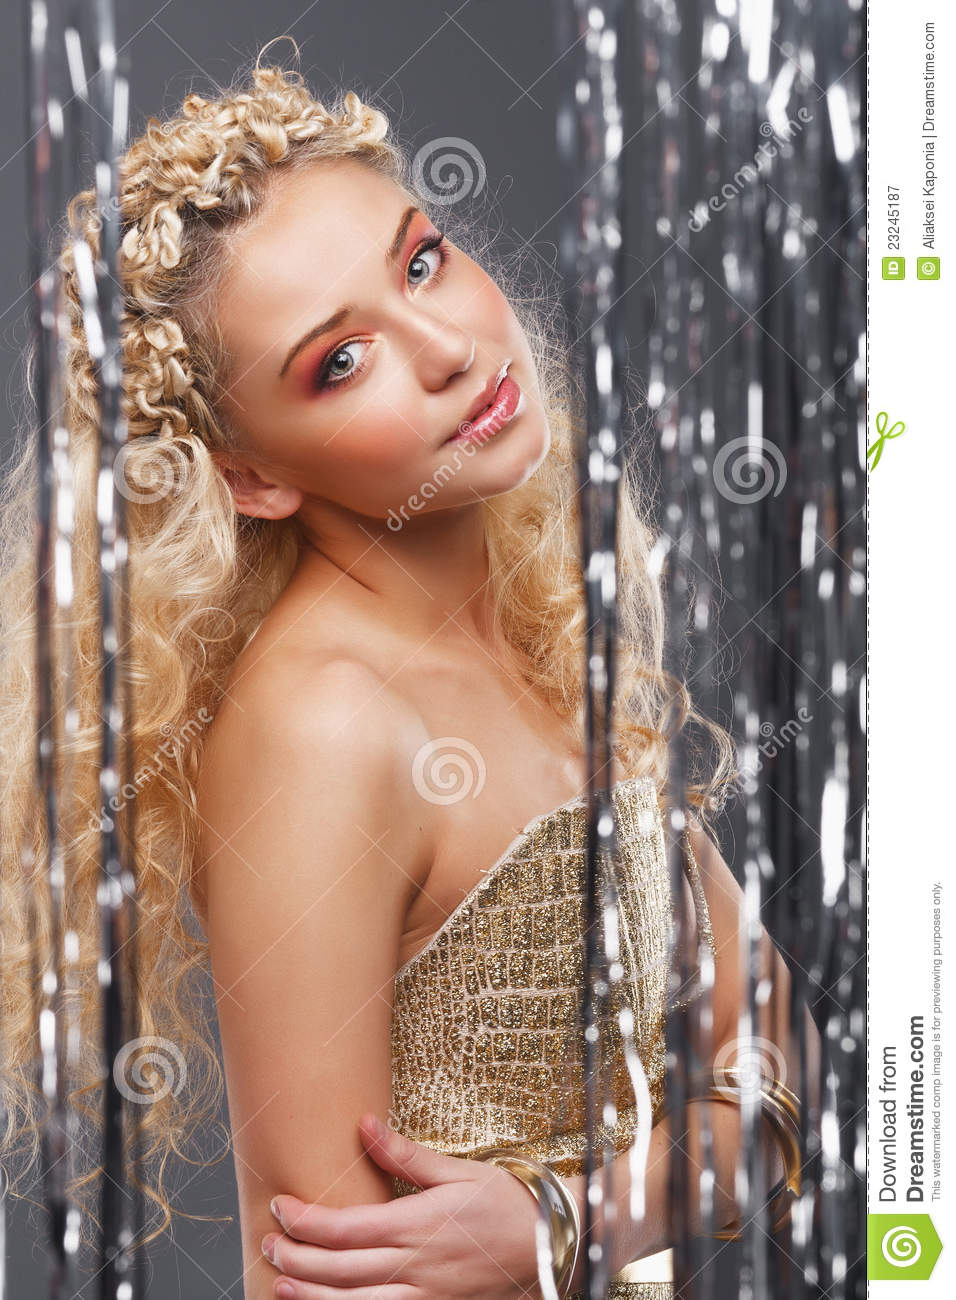 Young blonde girl with curly hair